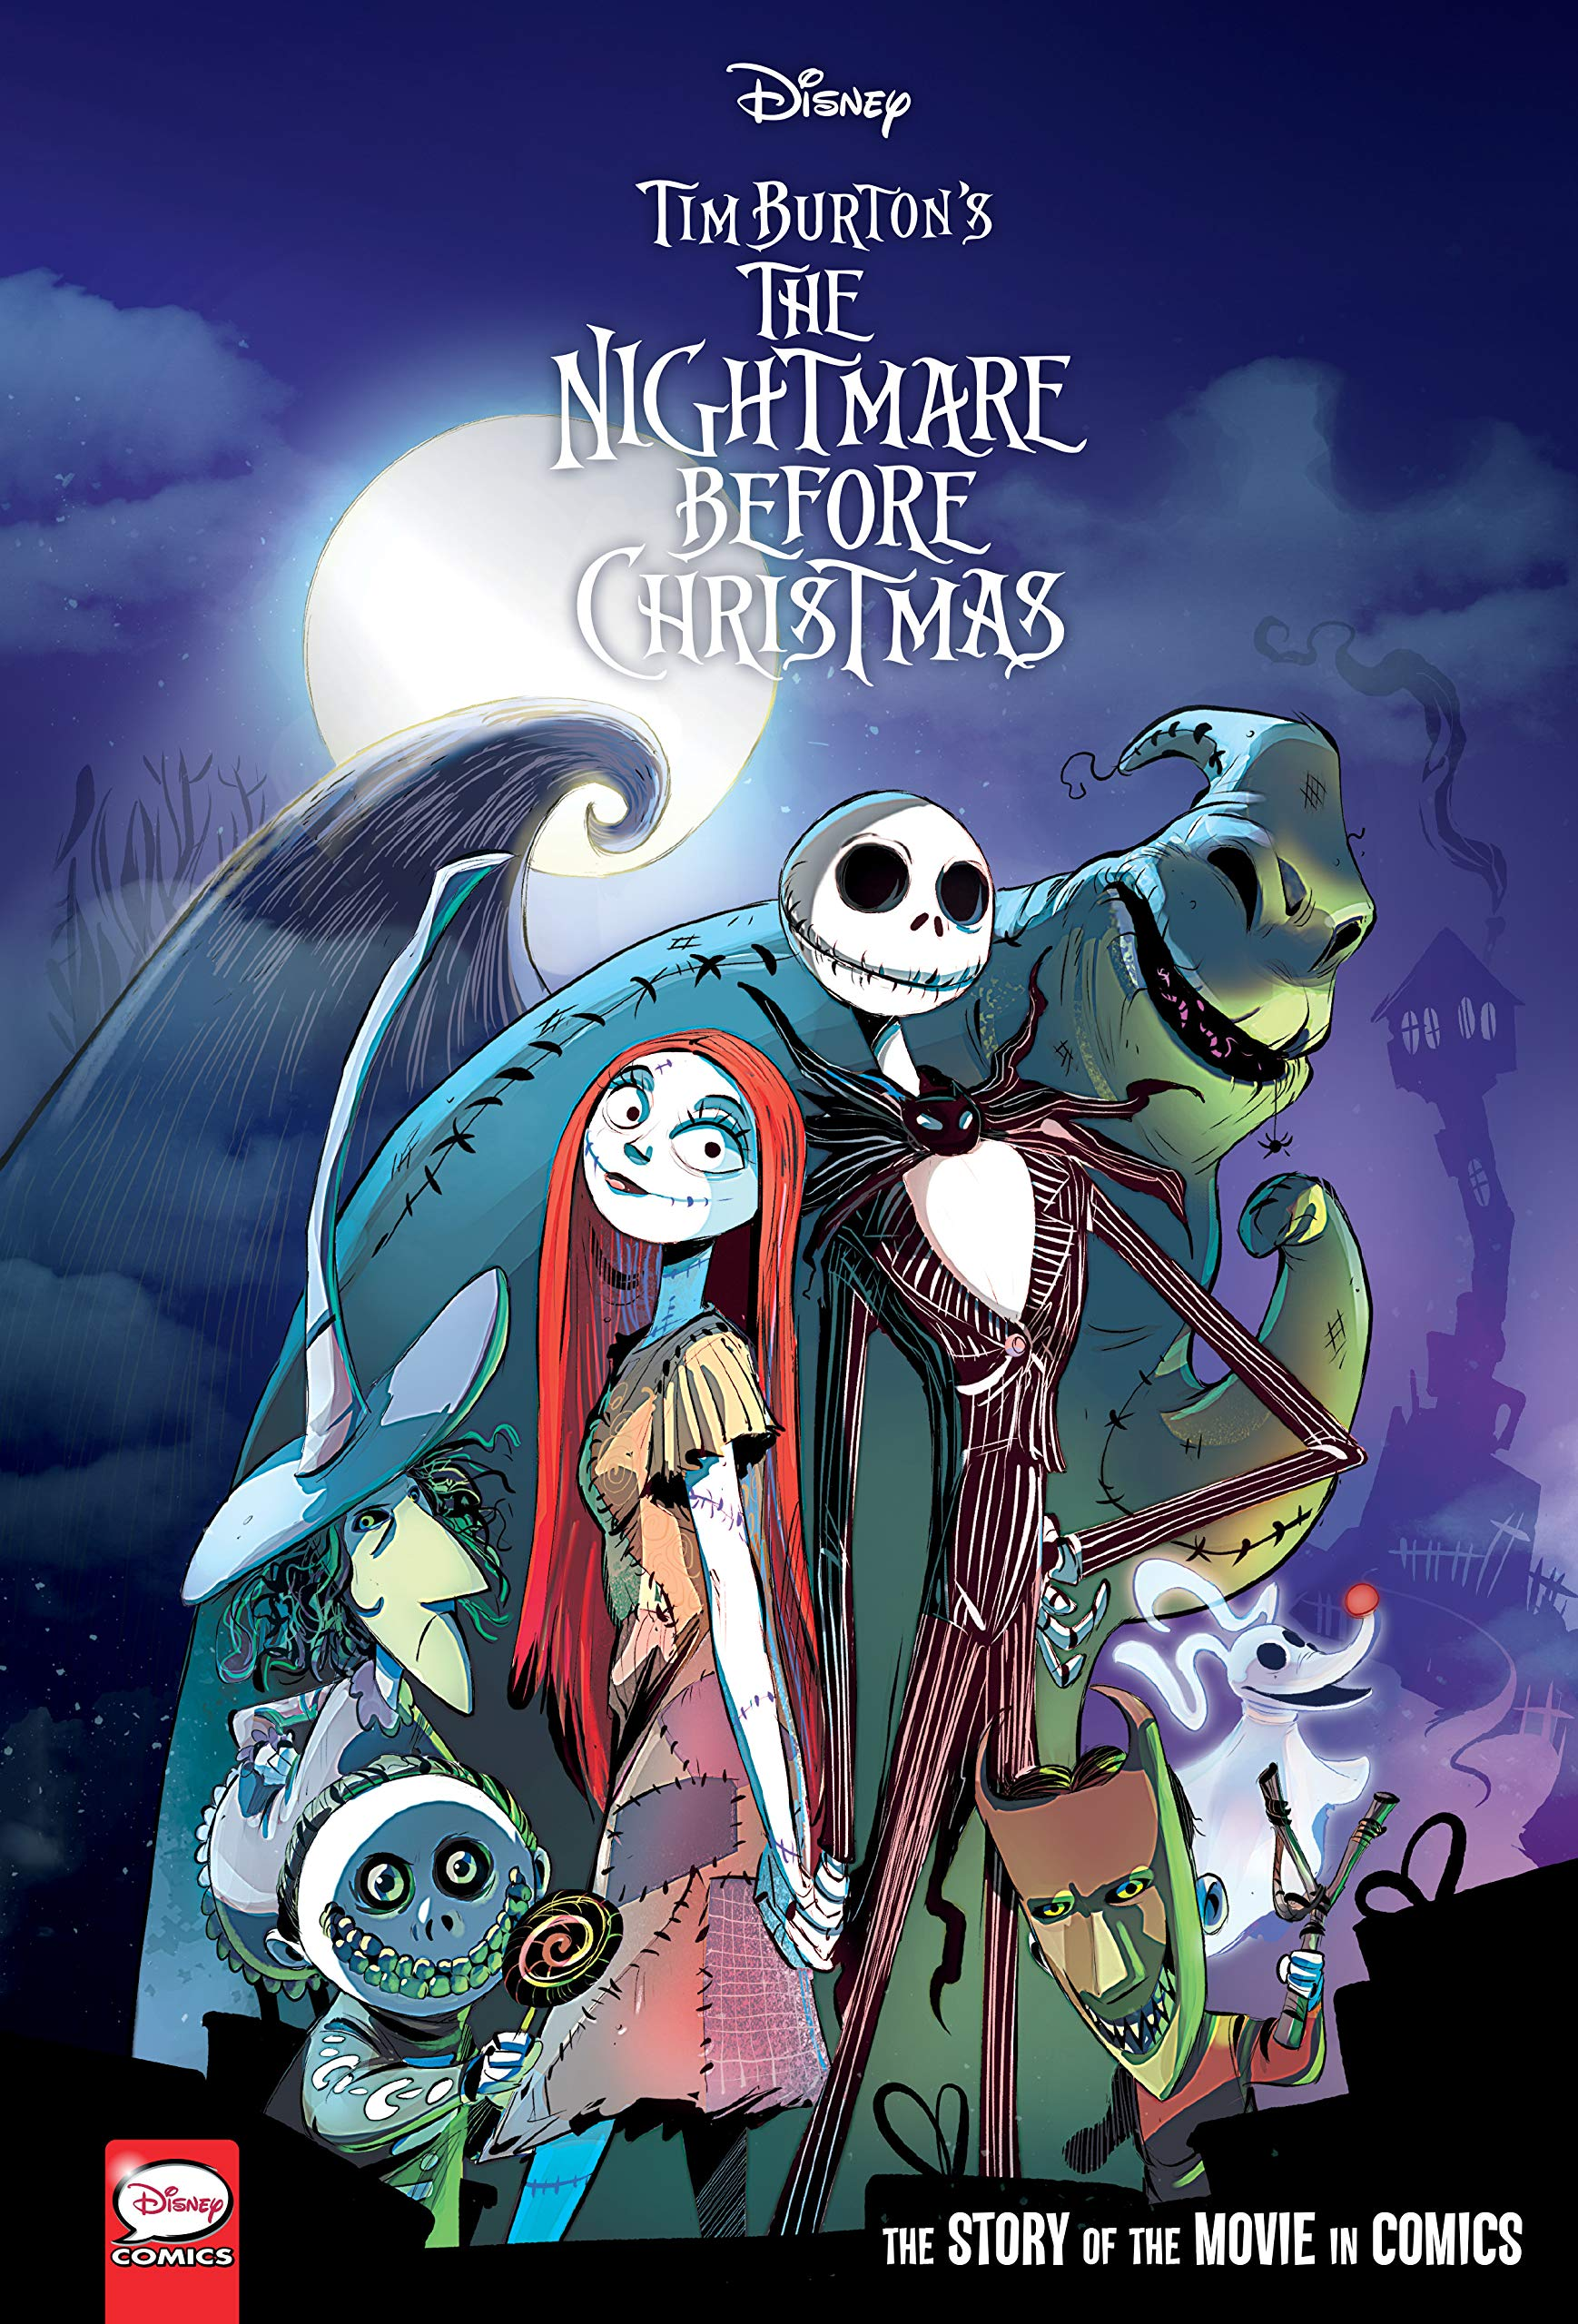 DISNEY NIGHTMARE BEFORE CHRISTMAS MOVIE IN COMICS HC Disney the Nightmare Before Christmas: Amazon.es: Ferrari, Alessandro, Narciso, Massimiliano: Libros en idiomas extranjeros